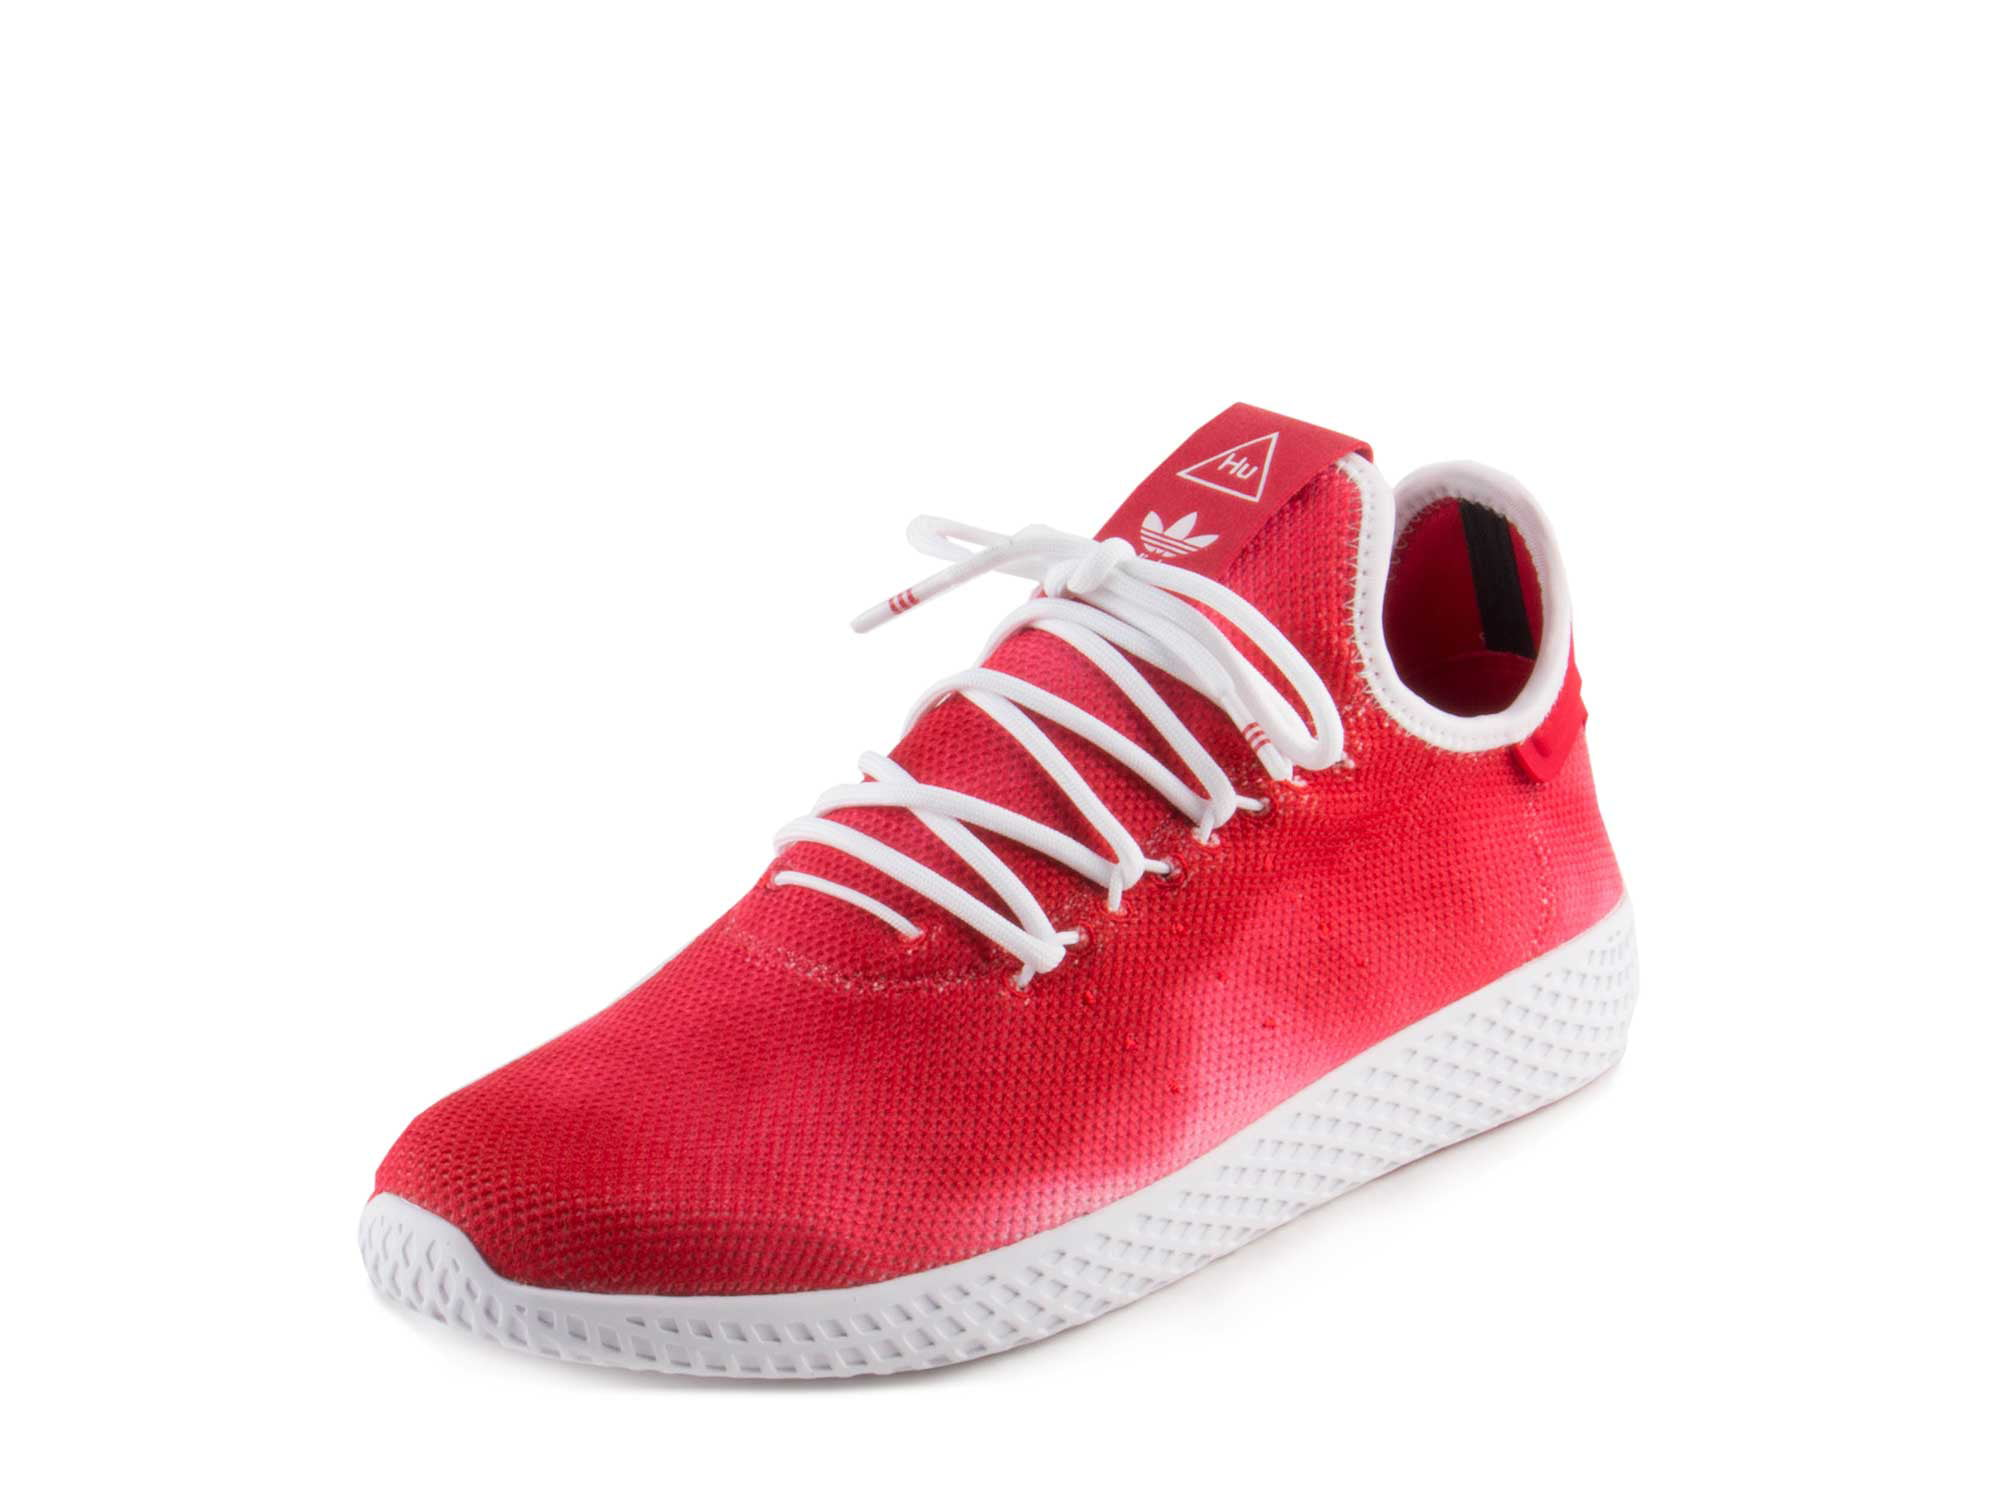 Adidas Mens PW HU HOLI Tennis Hu Scarlet Red Cloud White DA9615 by Adidas